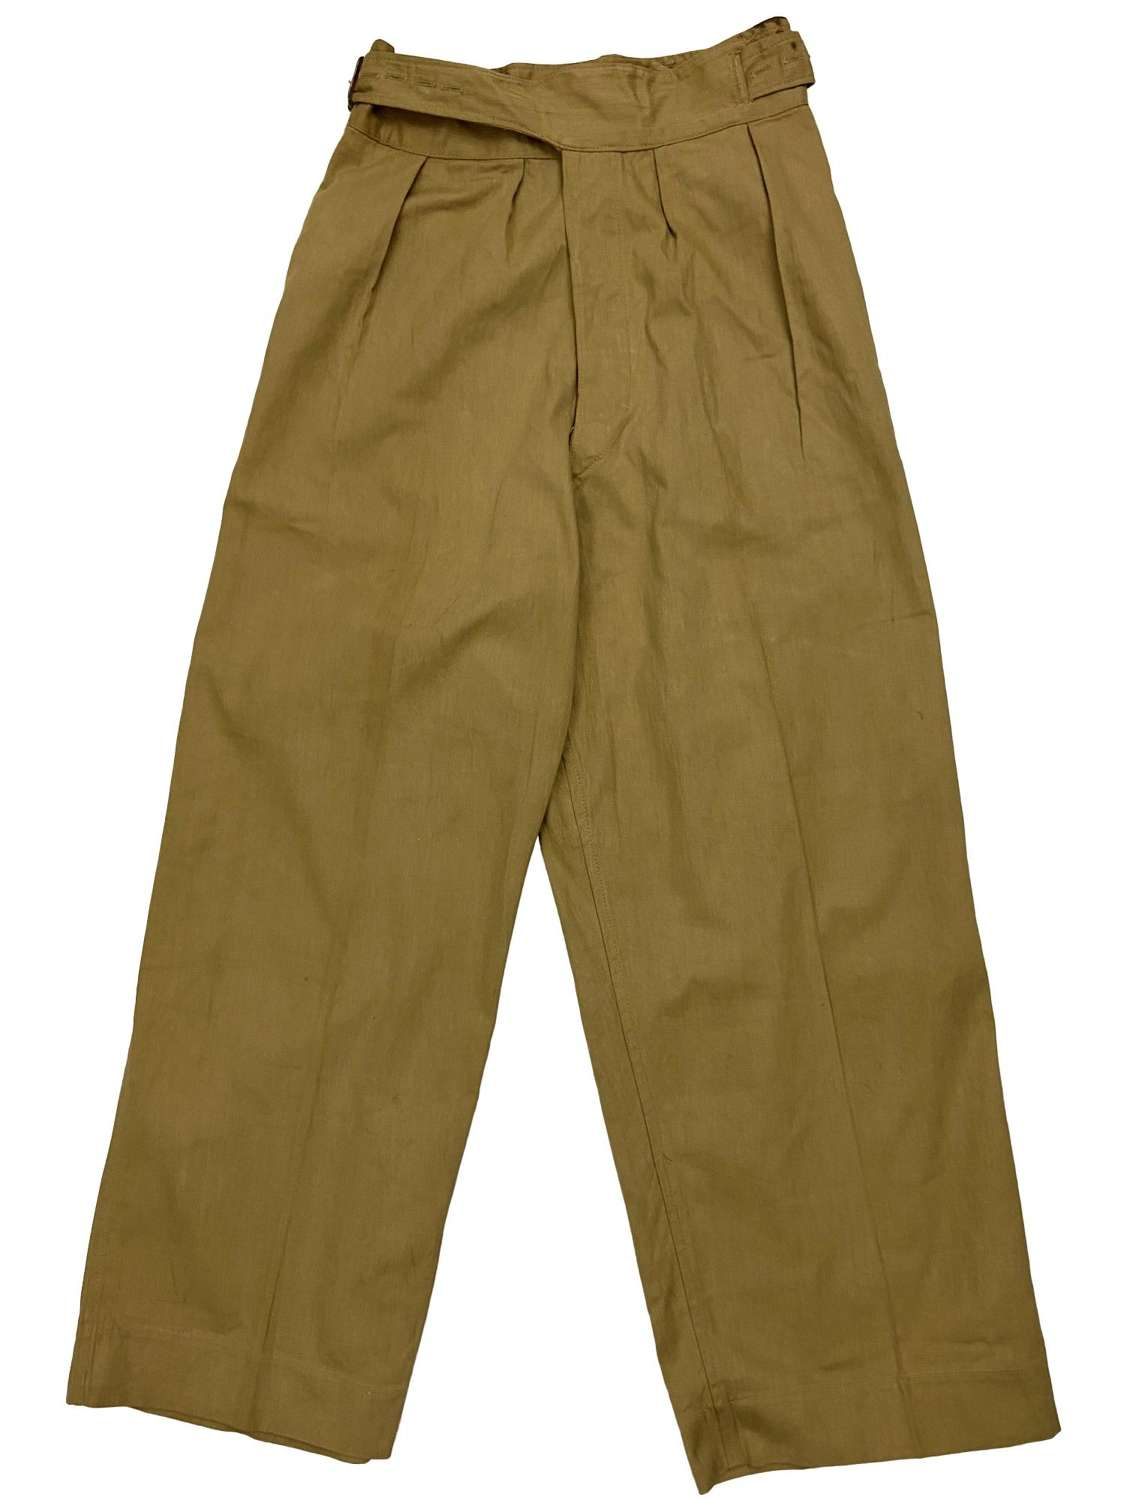 Original 1945 Dated Indian Made British Khaki Drill Trousers